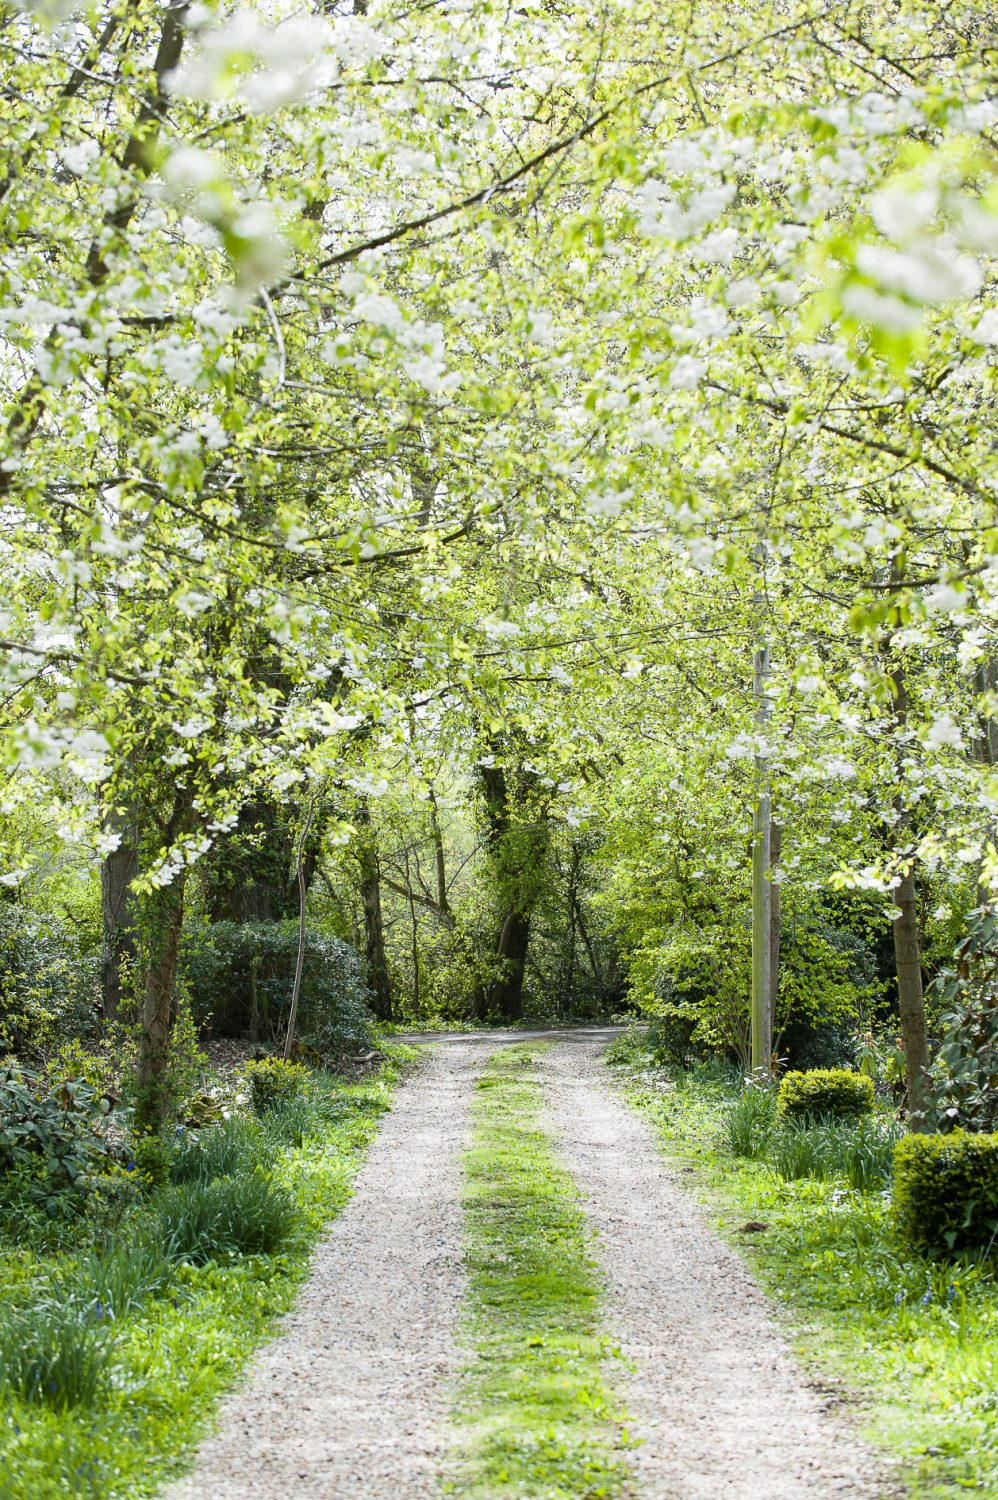 The woods are brimming with blossom and bluebells